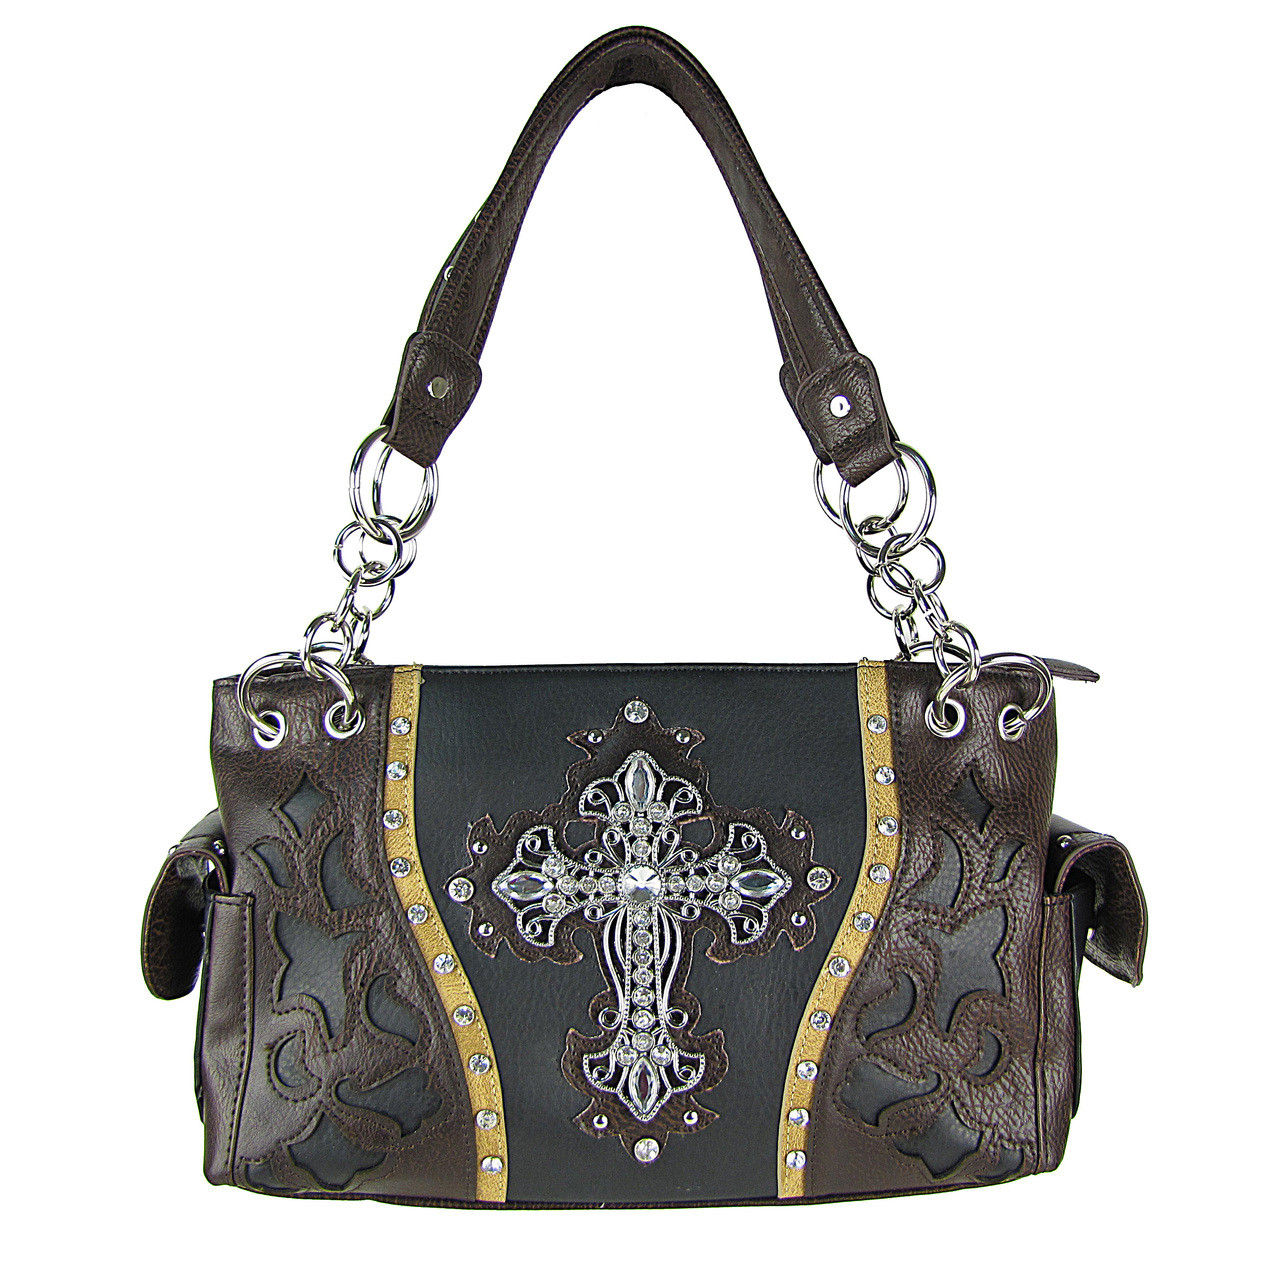 BLACK WESTERN RHINESTONE CROSS LOOK SHOULDER HANDBAG HB1-43LCRBLK